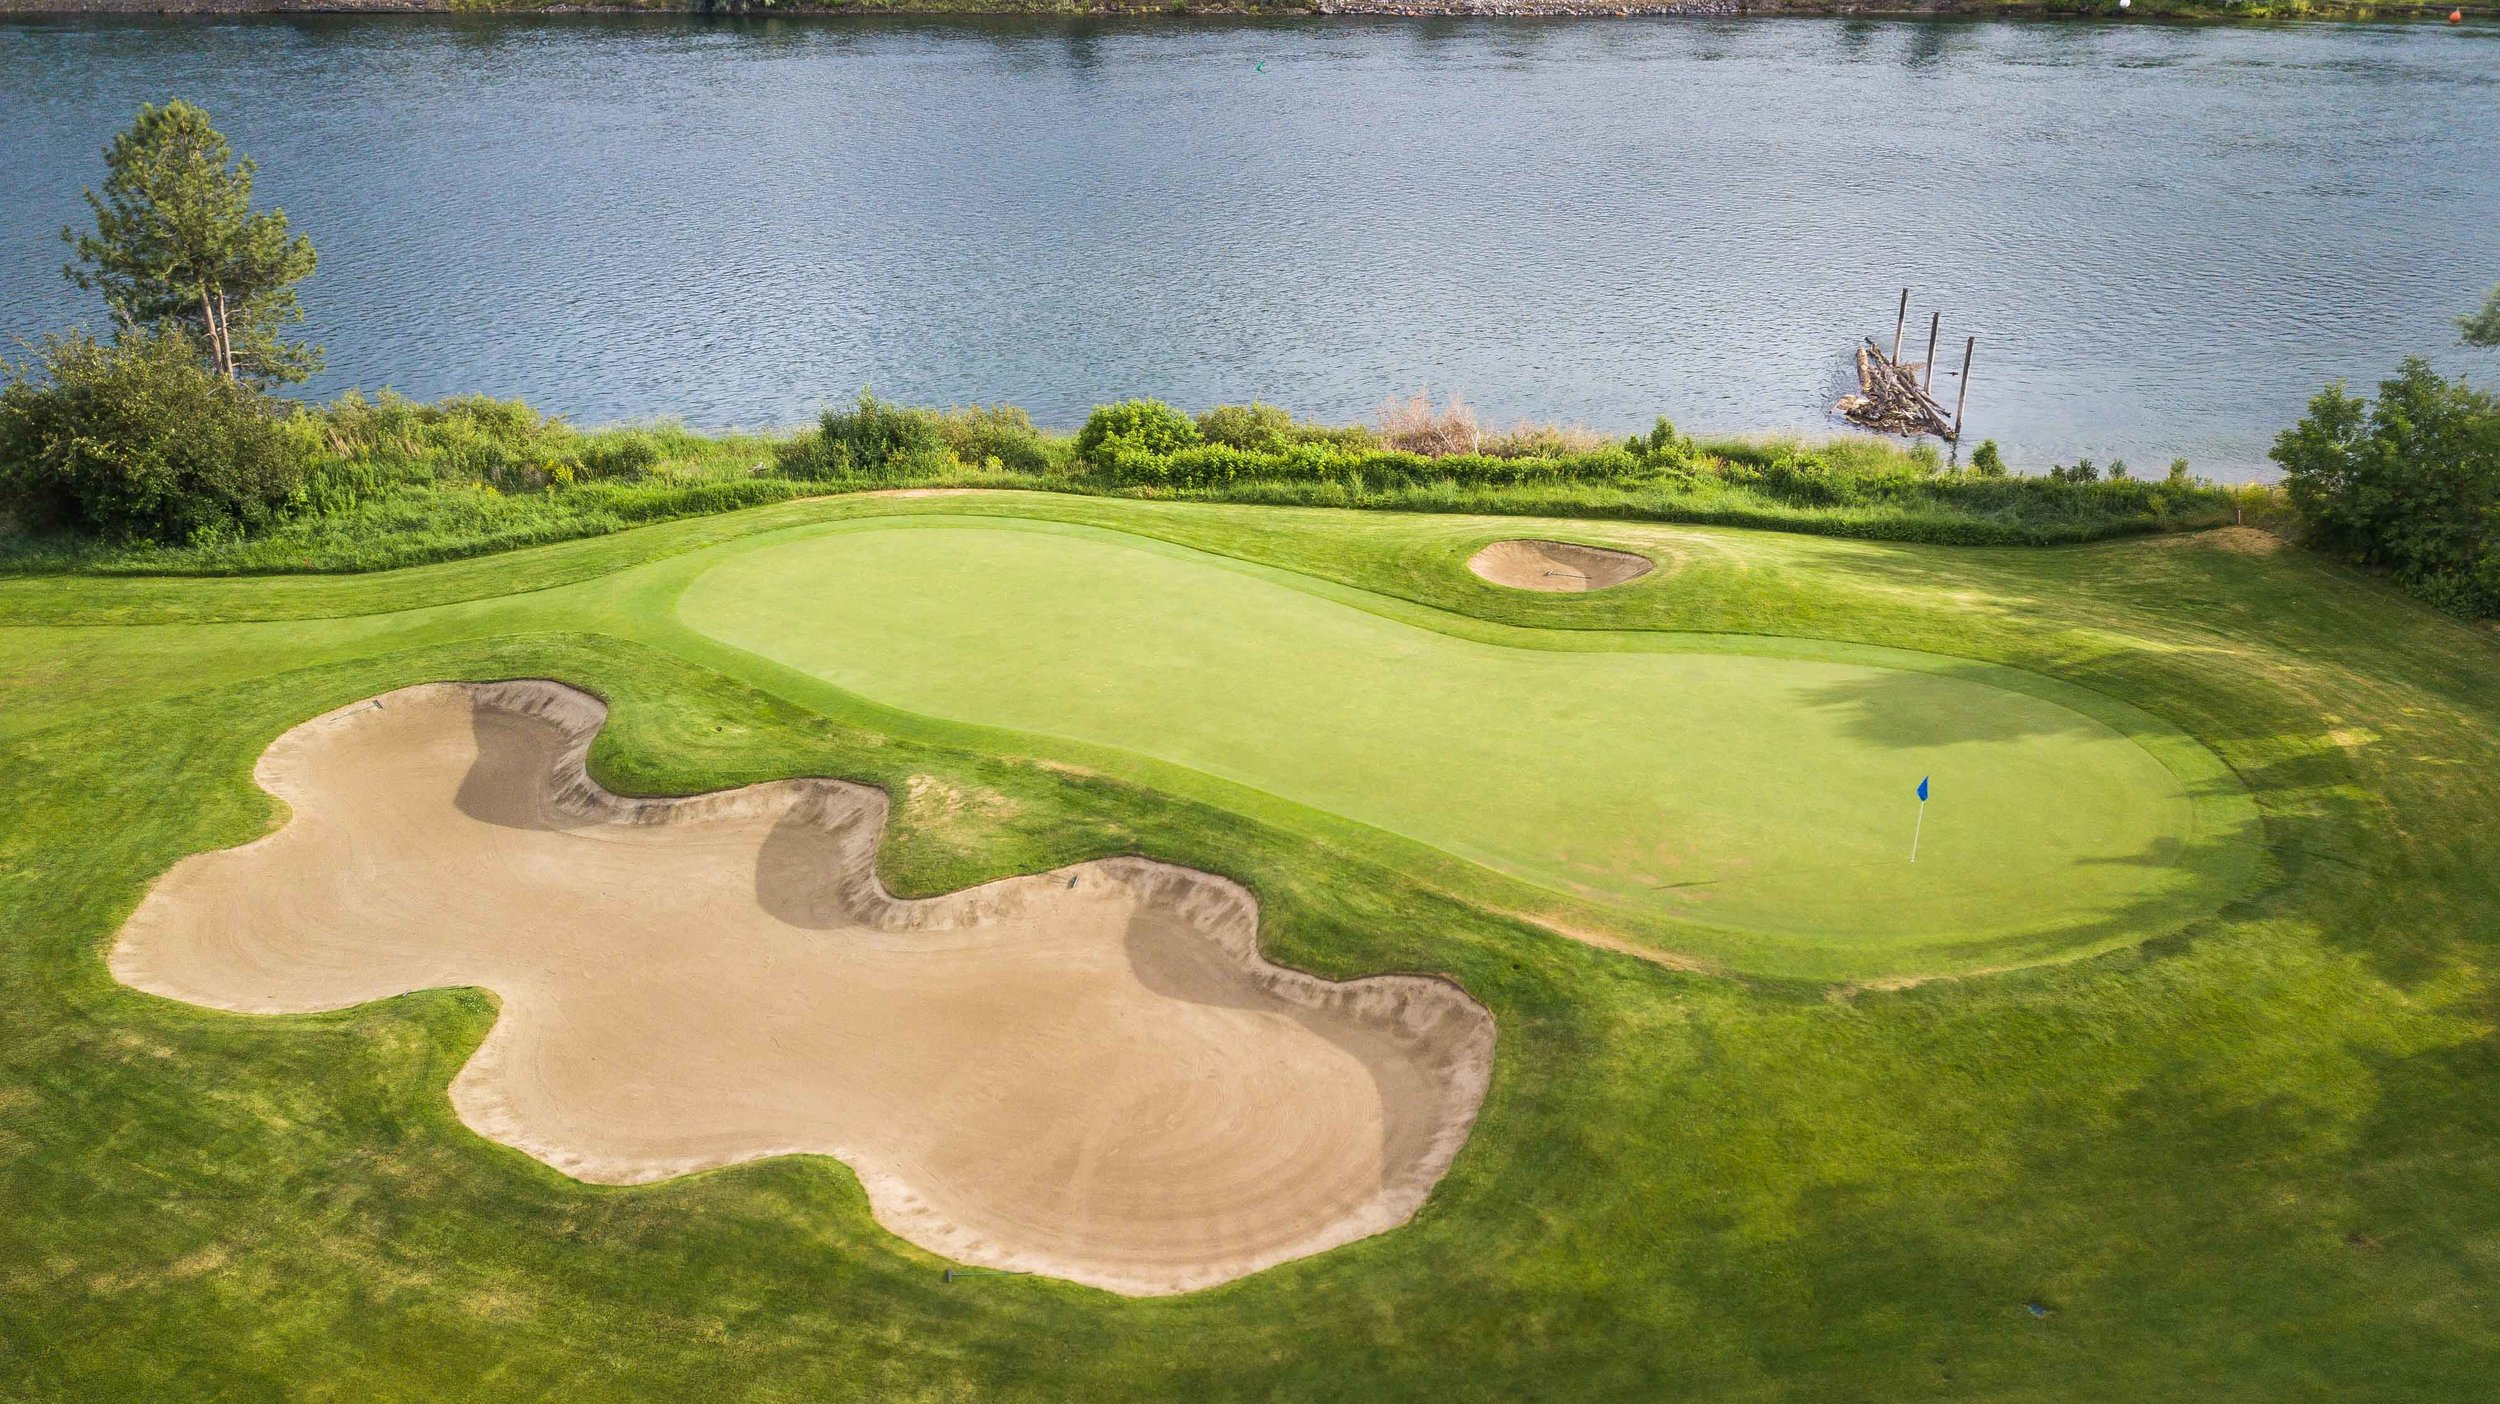 The finishing hole at Rivershore